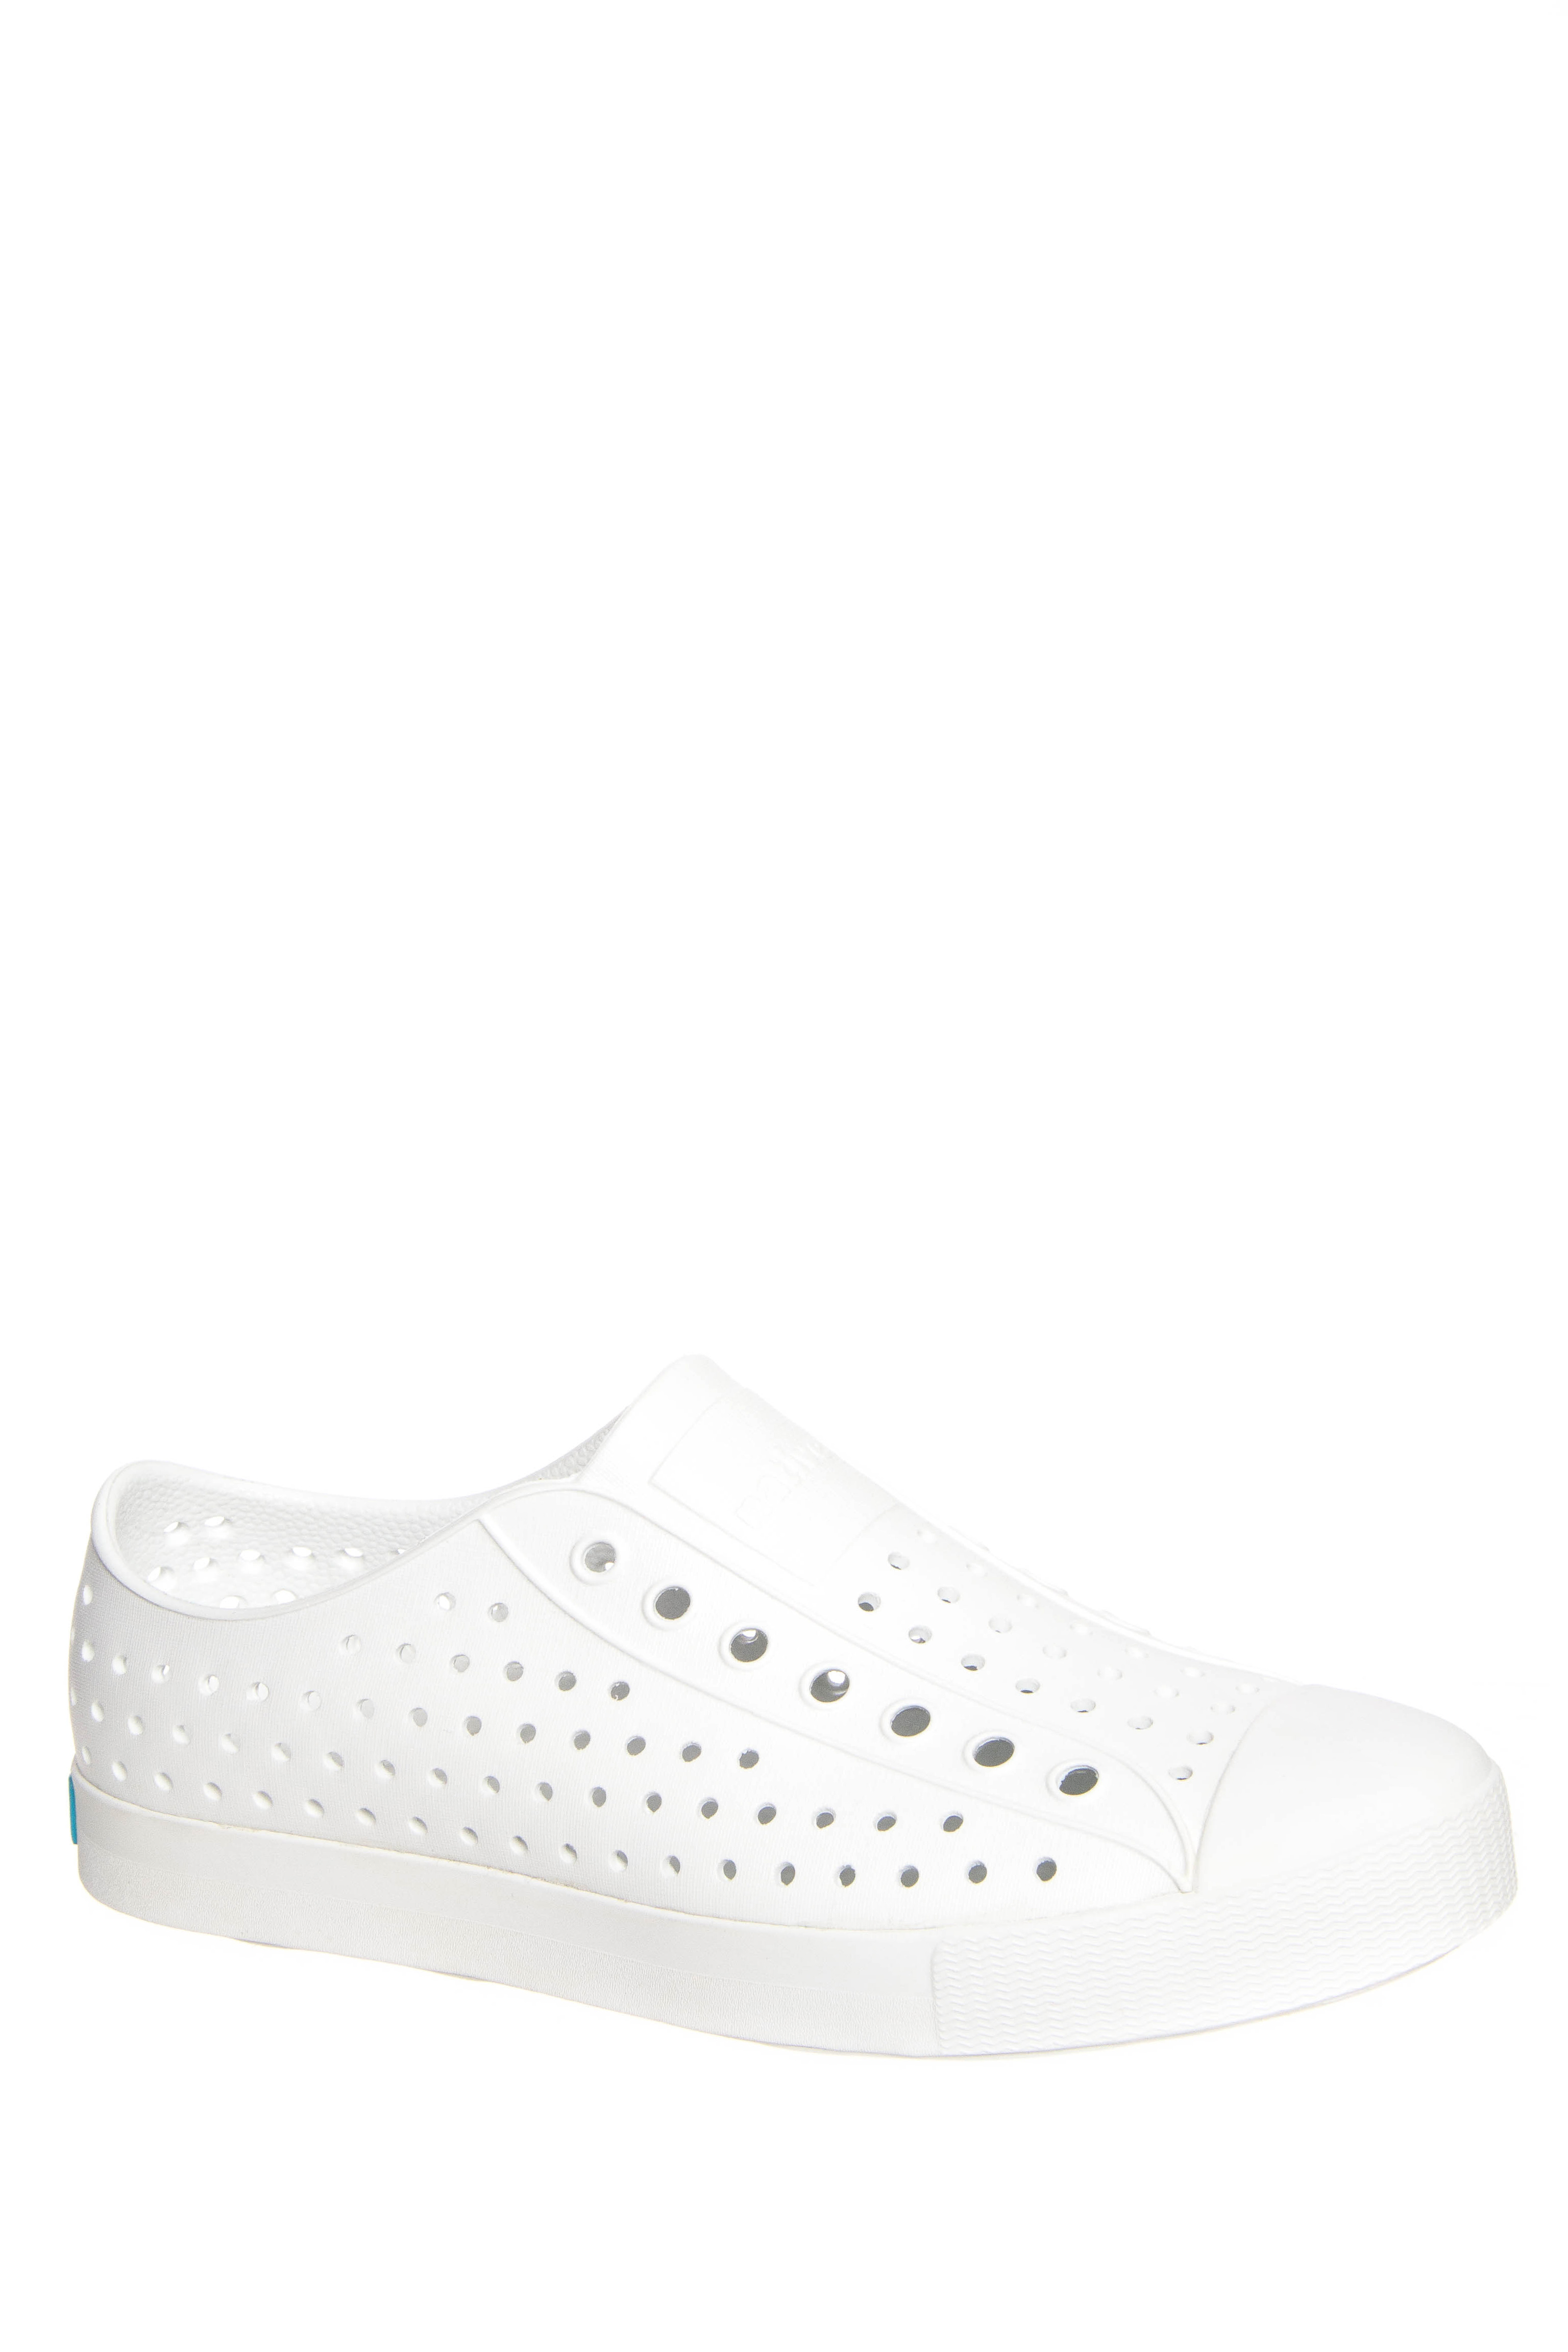 Native Unisex Jefferson Slip On Sneakers - Shell White Solid